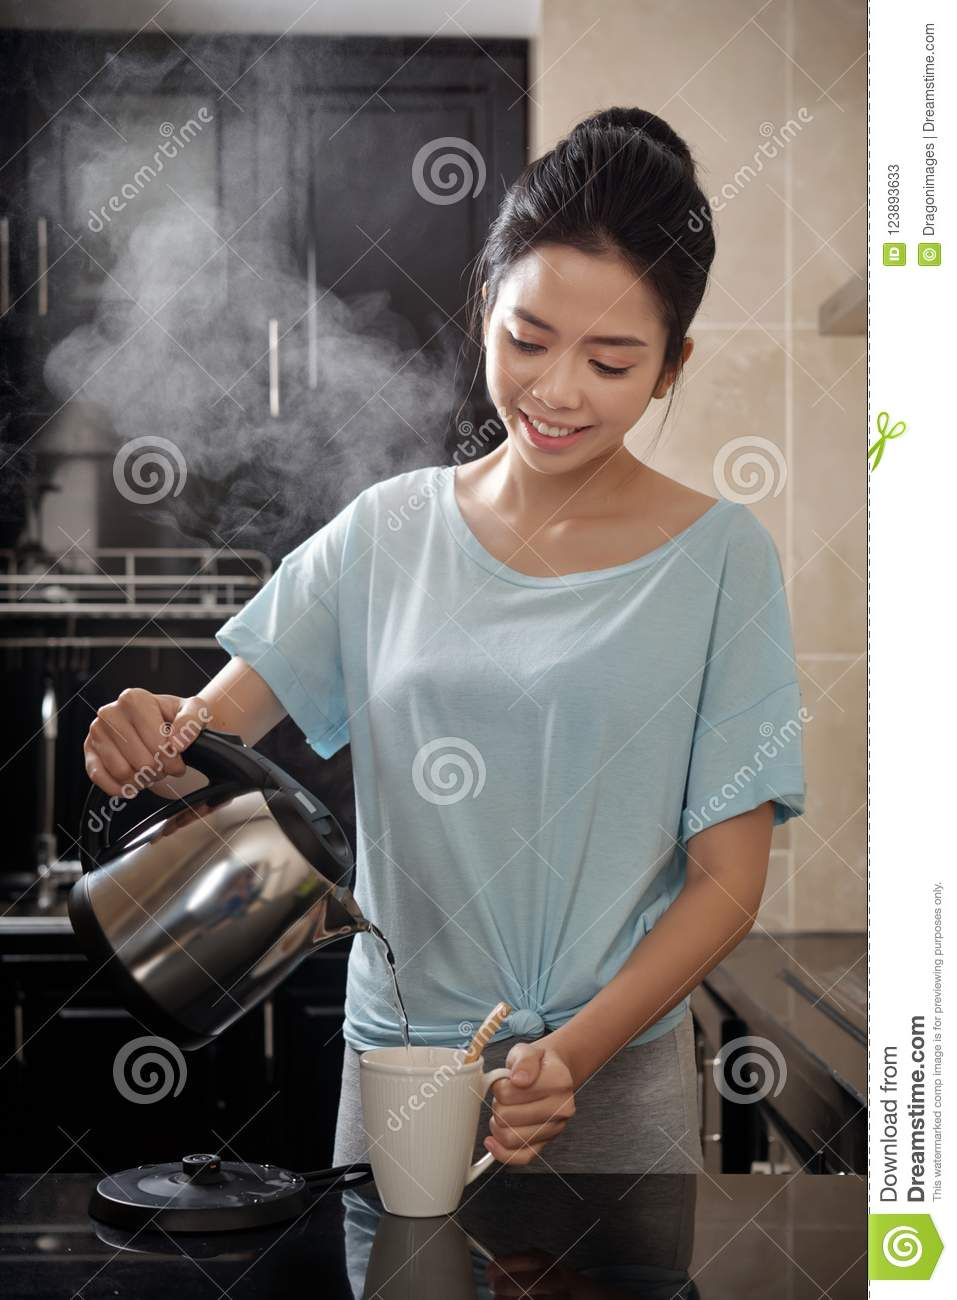 Asian Woman Brewing Drink In Kitchen Stock Image - Image of lady ...